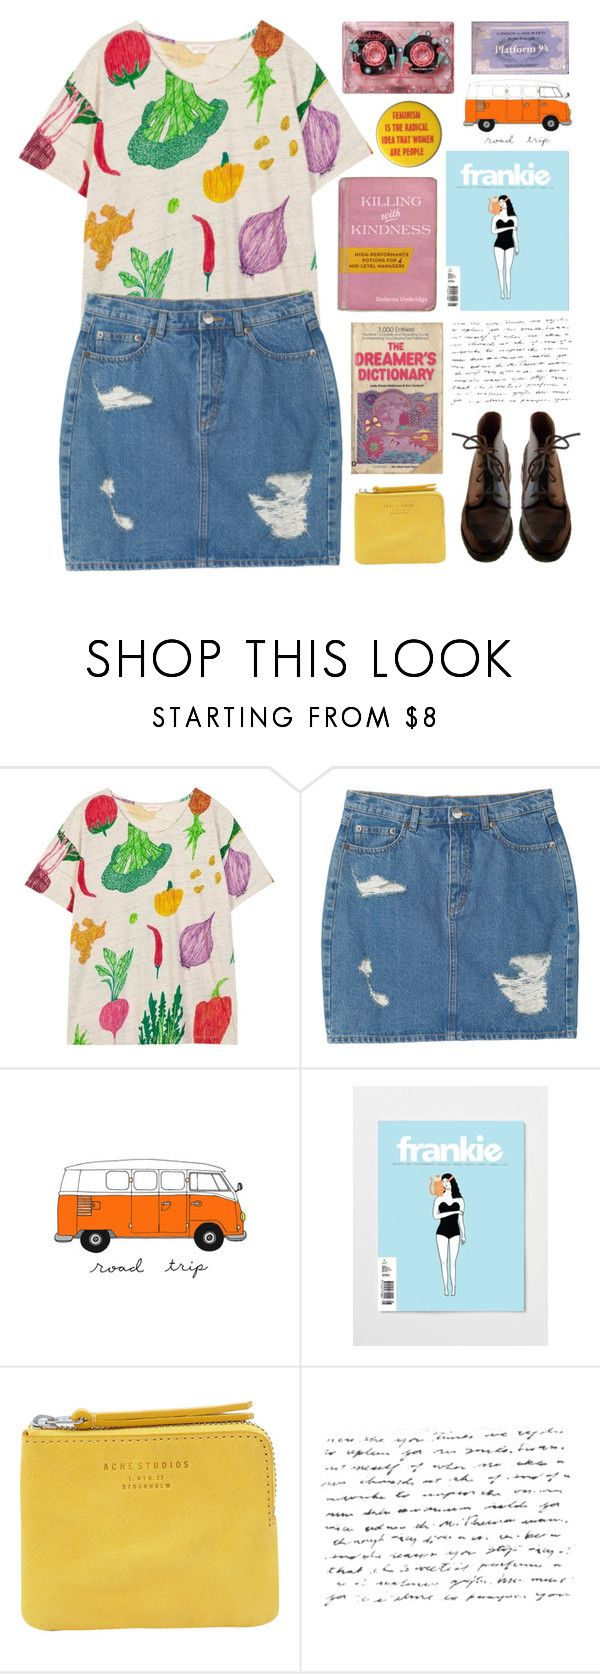 """""""Goodbye 2014, Hello 2015"""" by softenedpressures ❤ liked on Polyvore featuring Gypsy, Monki, Acne Studios, CASSETTE and Timberland"""